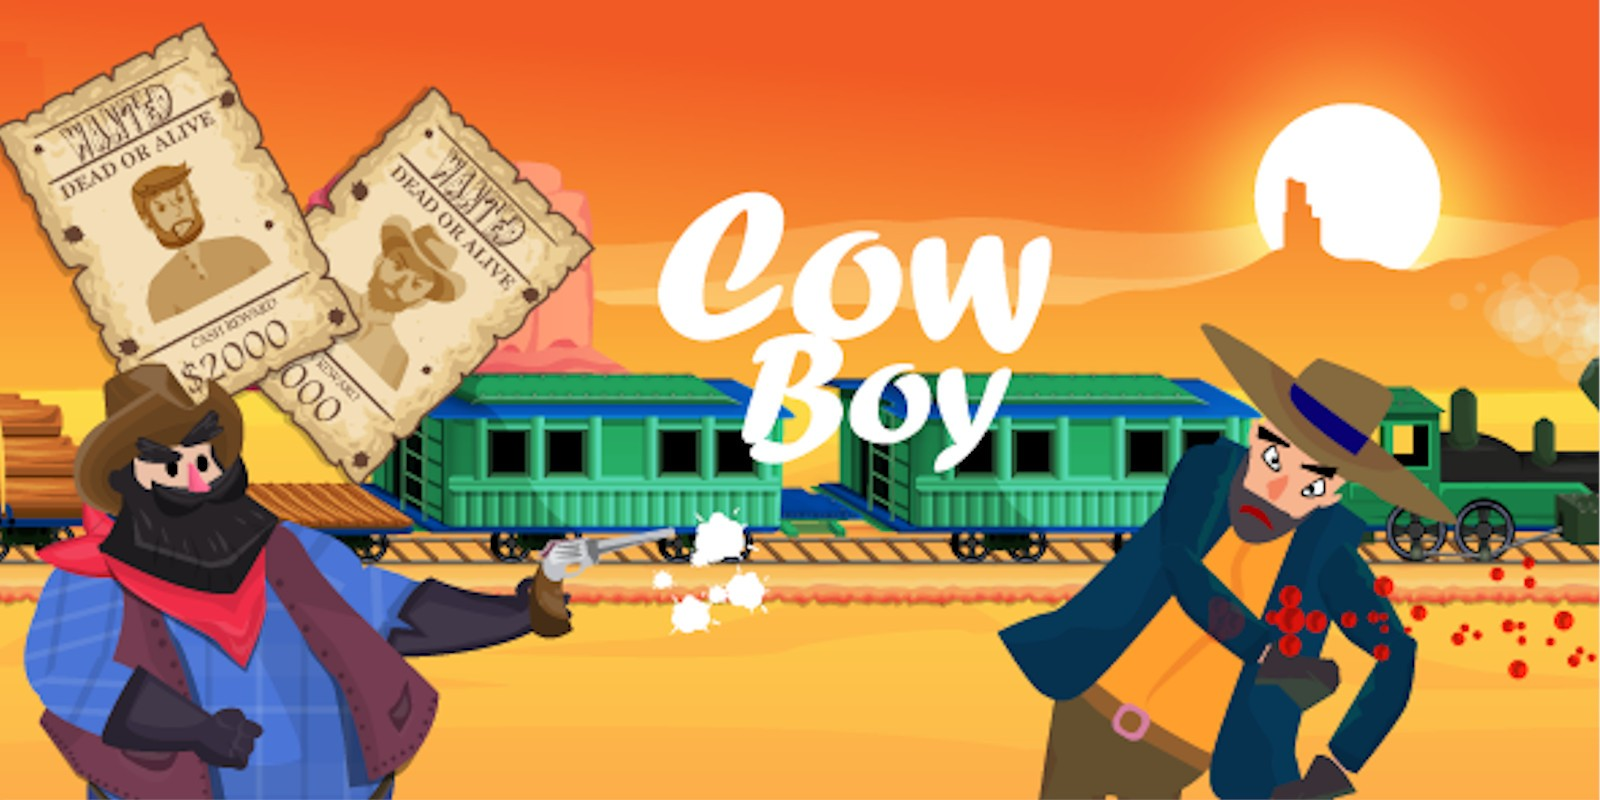 Cowboy - Unity Complete Project